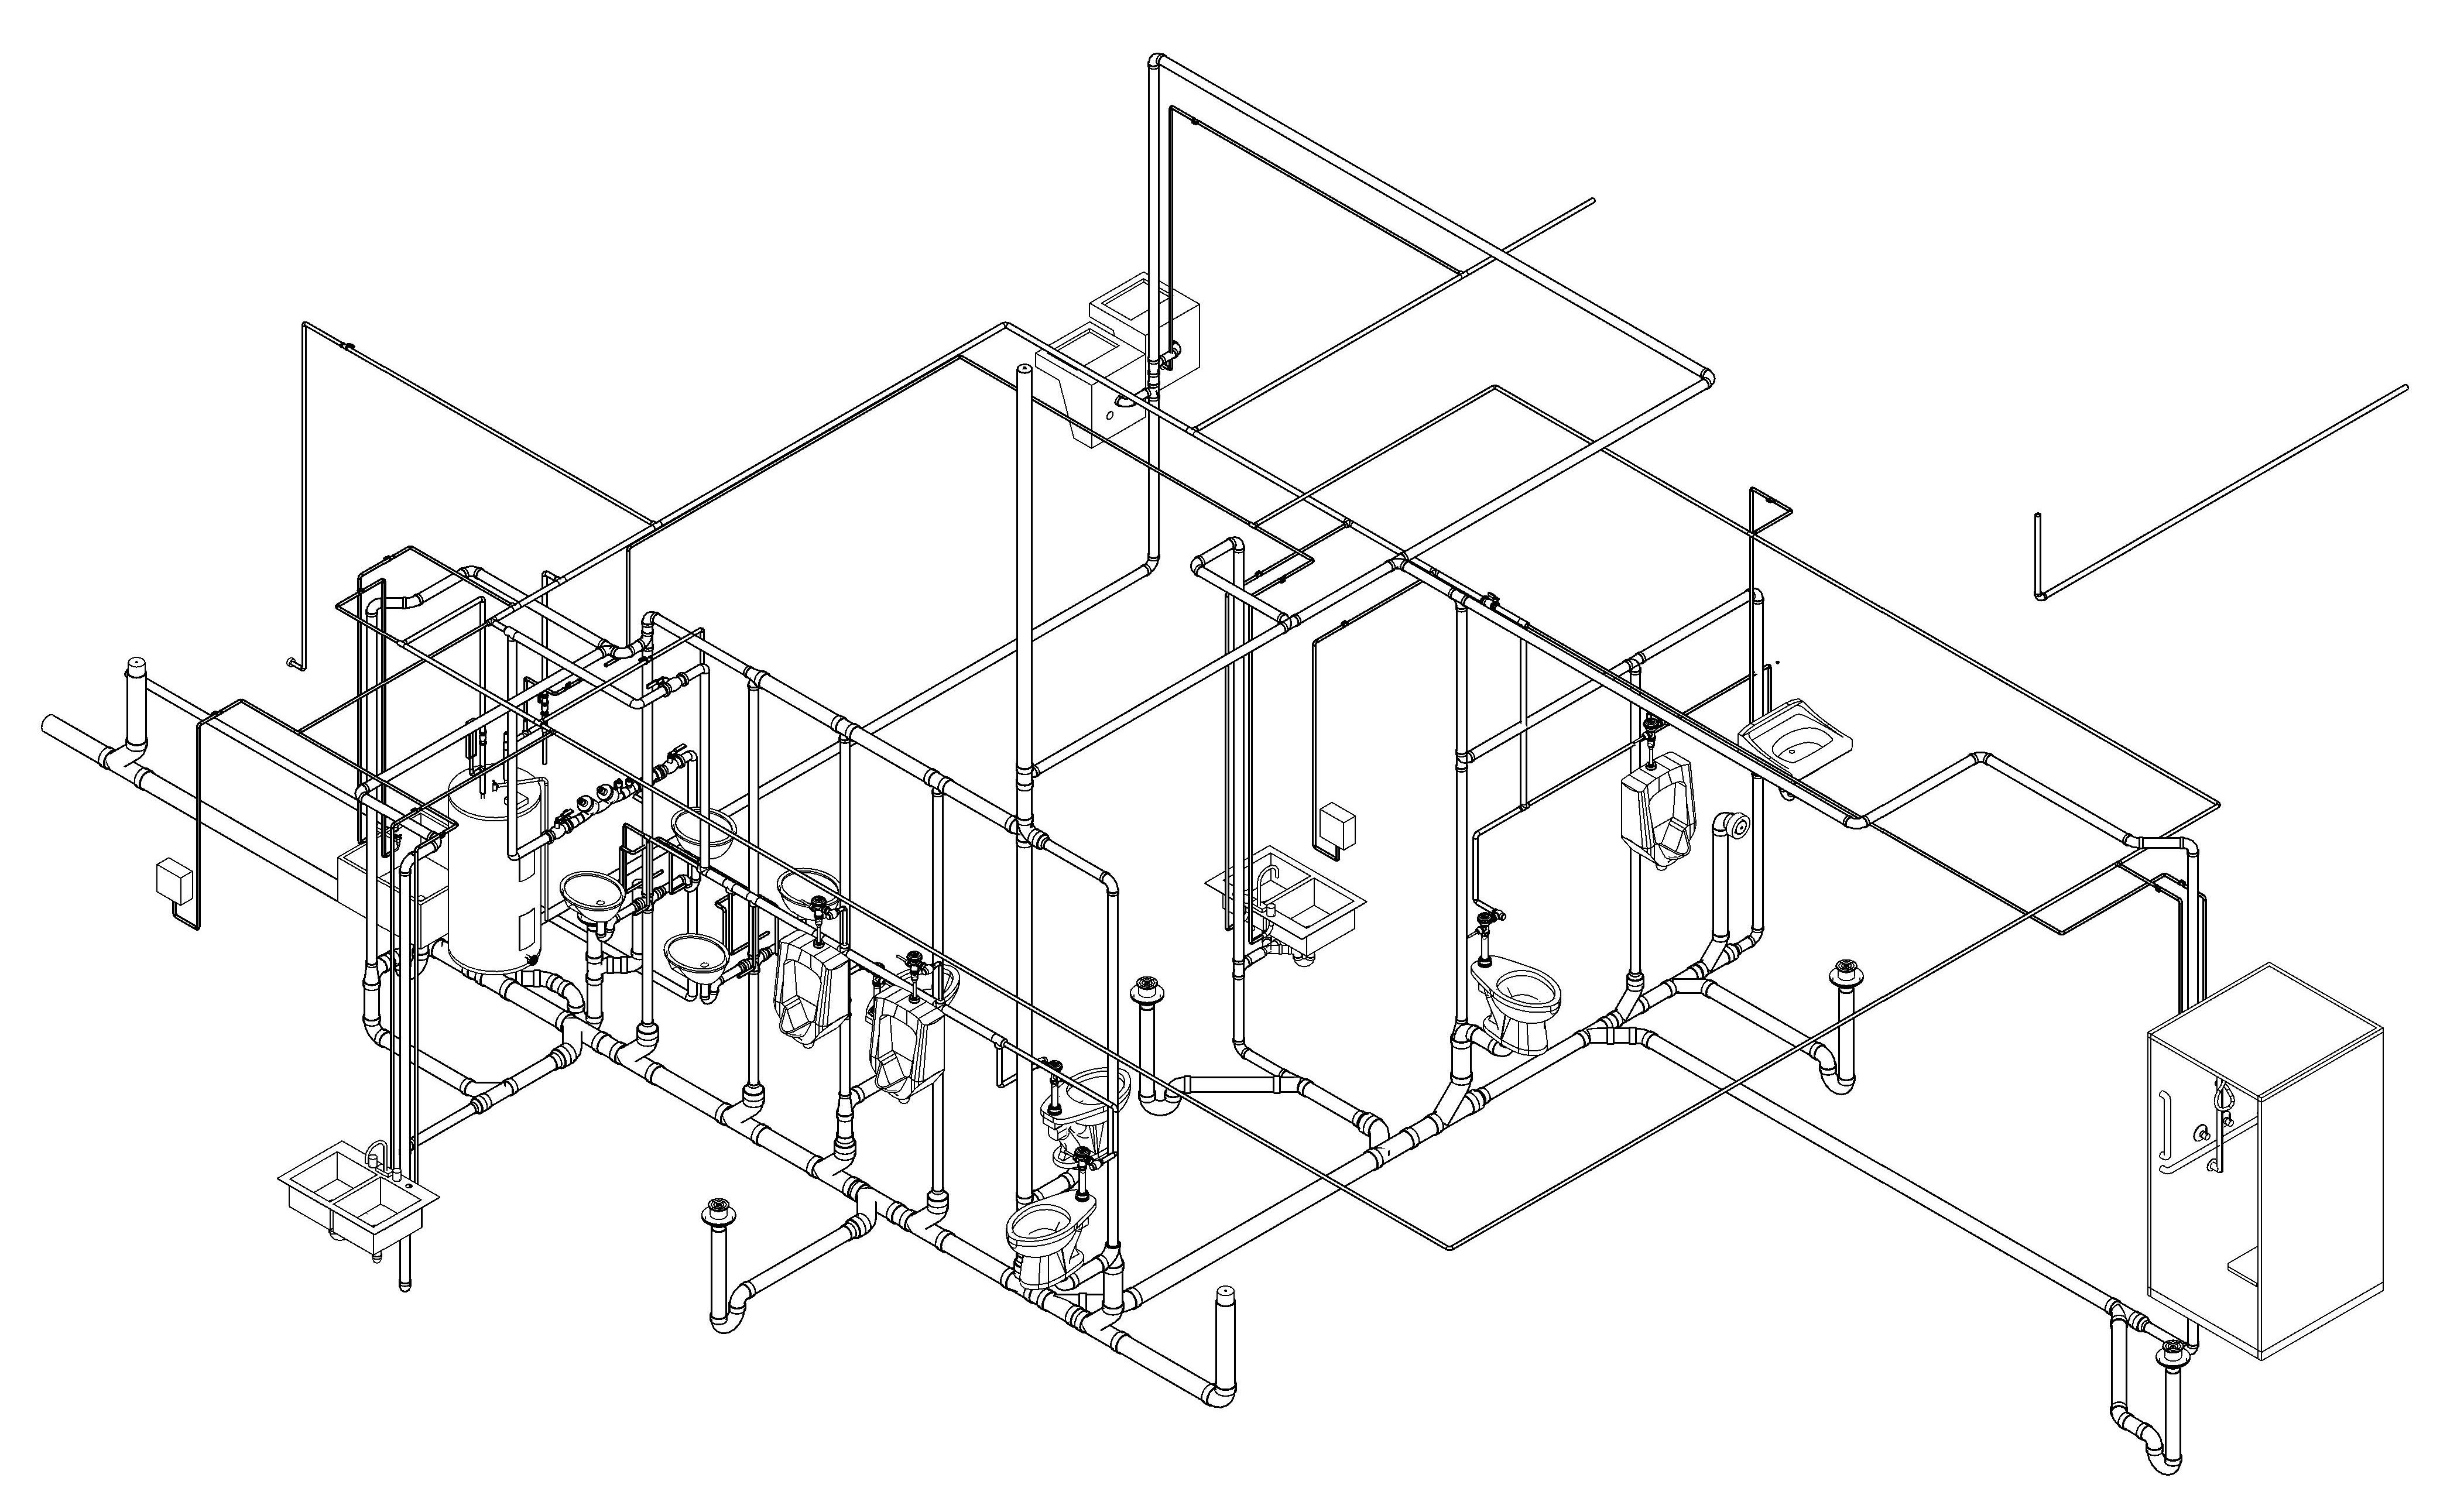 isometric piping diagram 2000 dodge durango parts commercial kitchen plumbing diagrams html